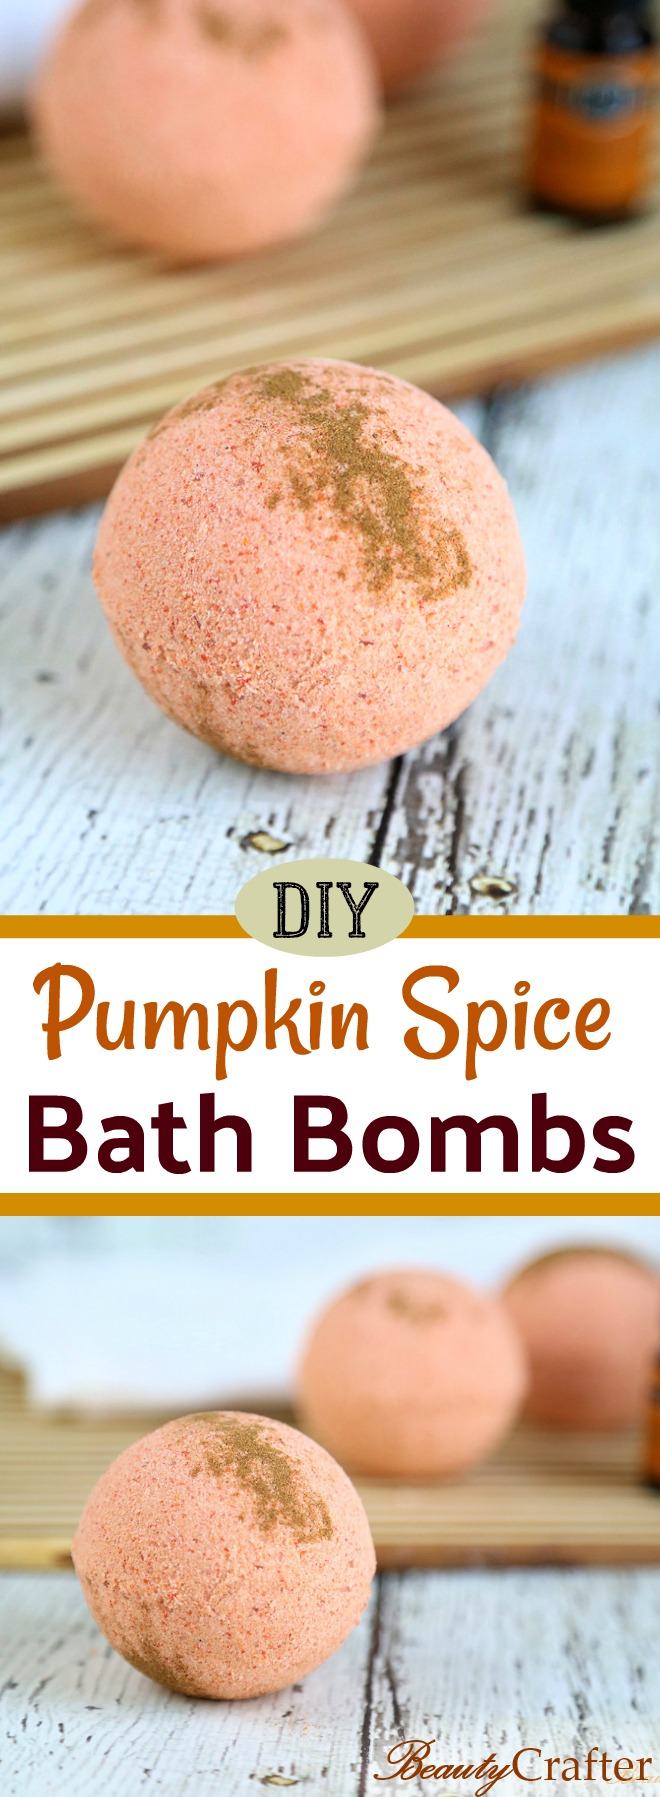 Pumpkin Spice Bath Bombs DIY Recipe - a great diy gift for that #pumpkinspice lover in your life. #bathbombs #crafts